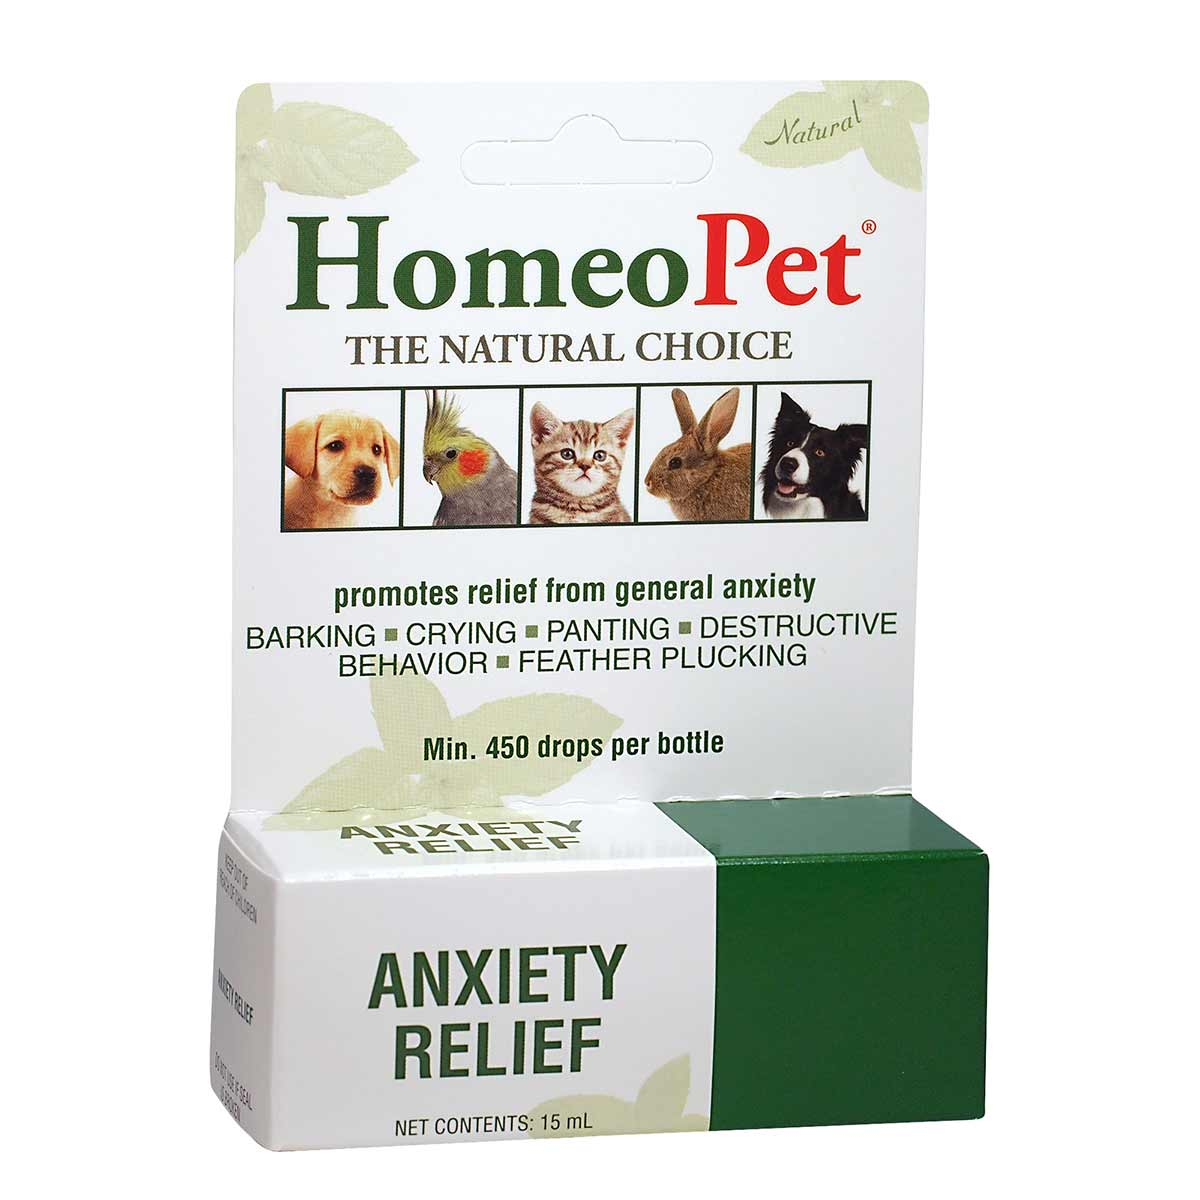 Natural HomeoPet Anxiety Relief for Dogs and Cats